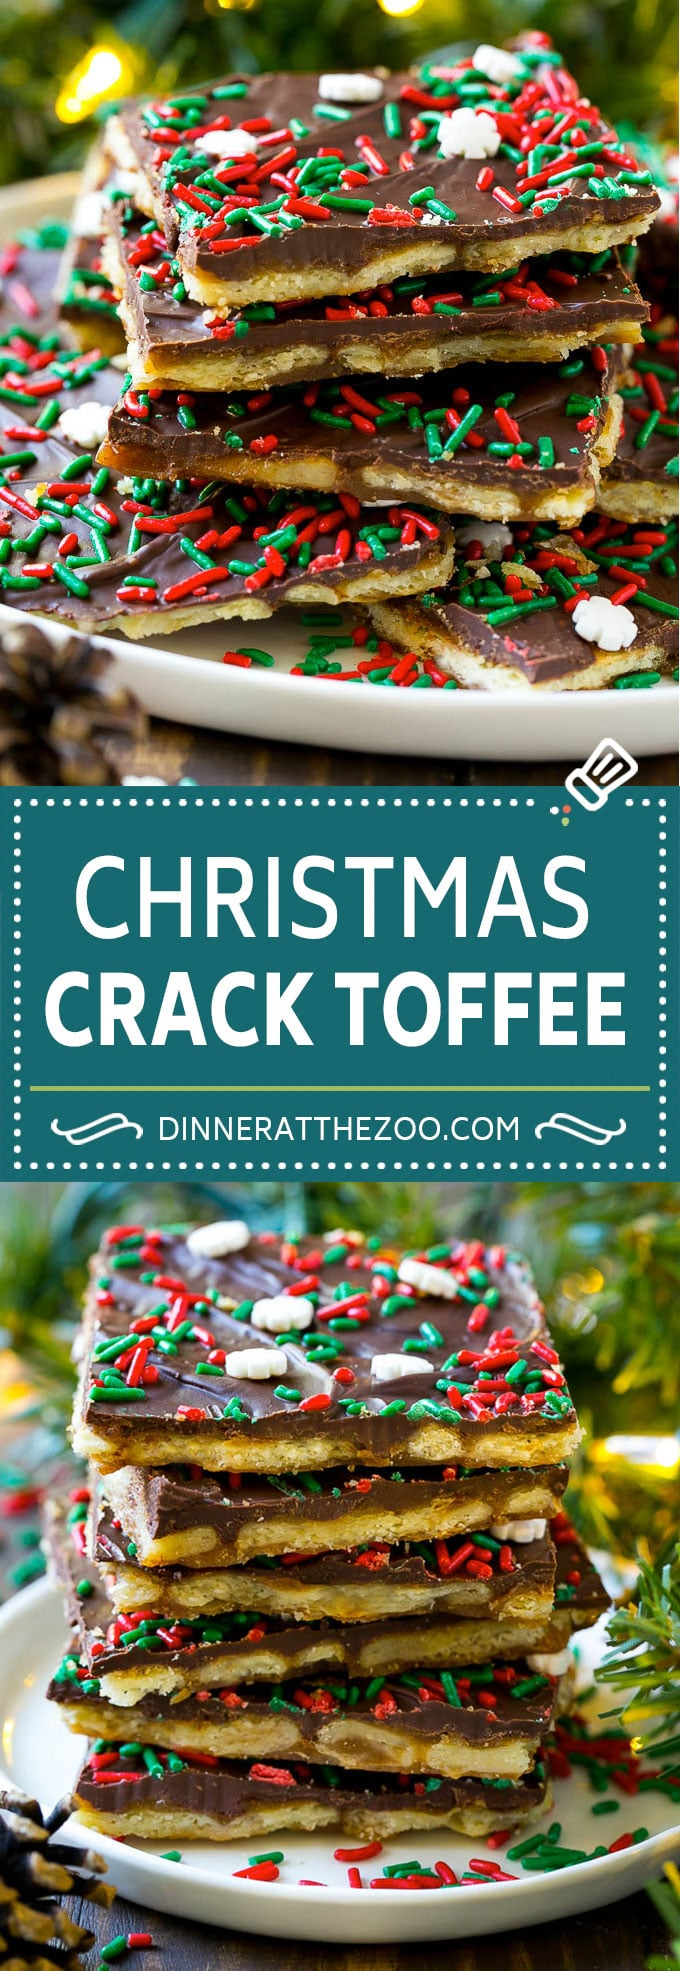 Christmas Crack Toffee Recipe | Saltine Toffee | Christmas Toffee #toffee #chocolate #christmas #candy #dessert #dinneratthezoo